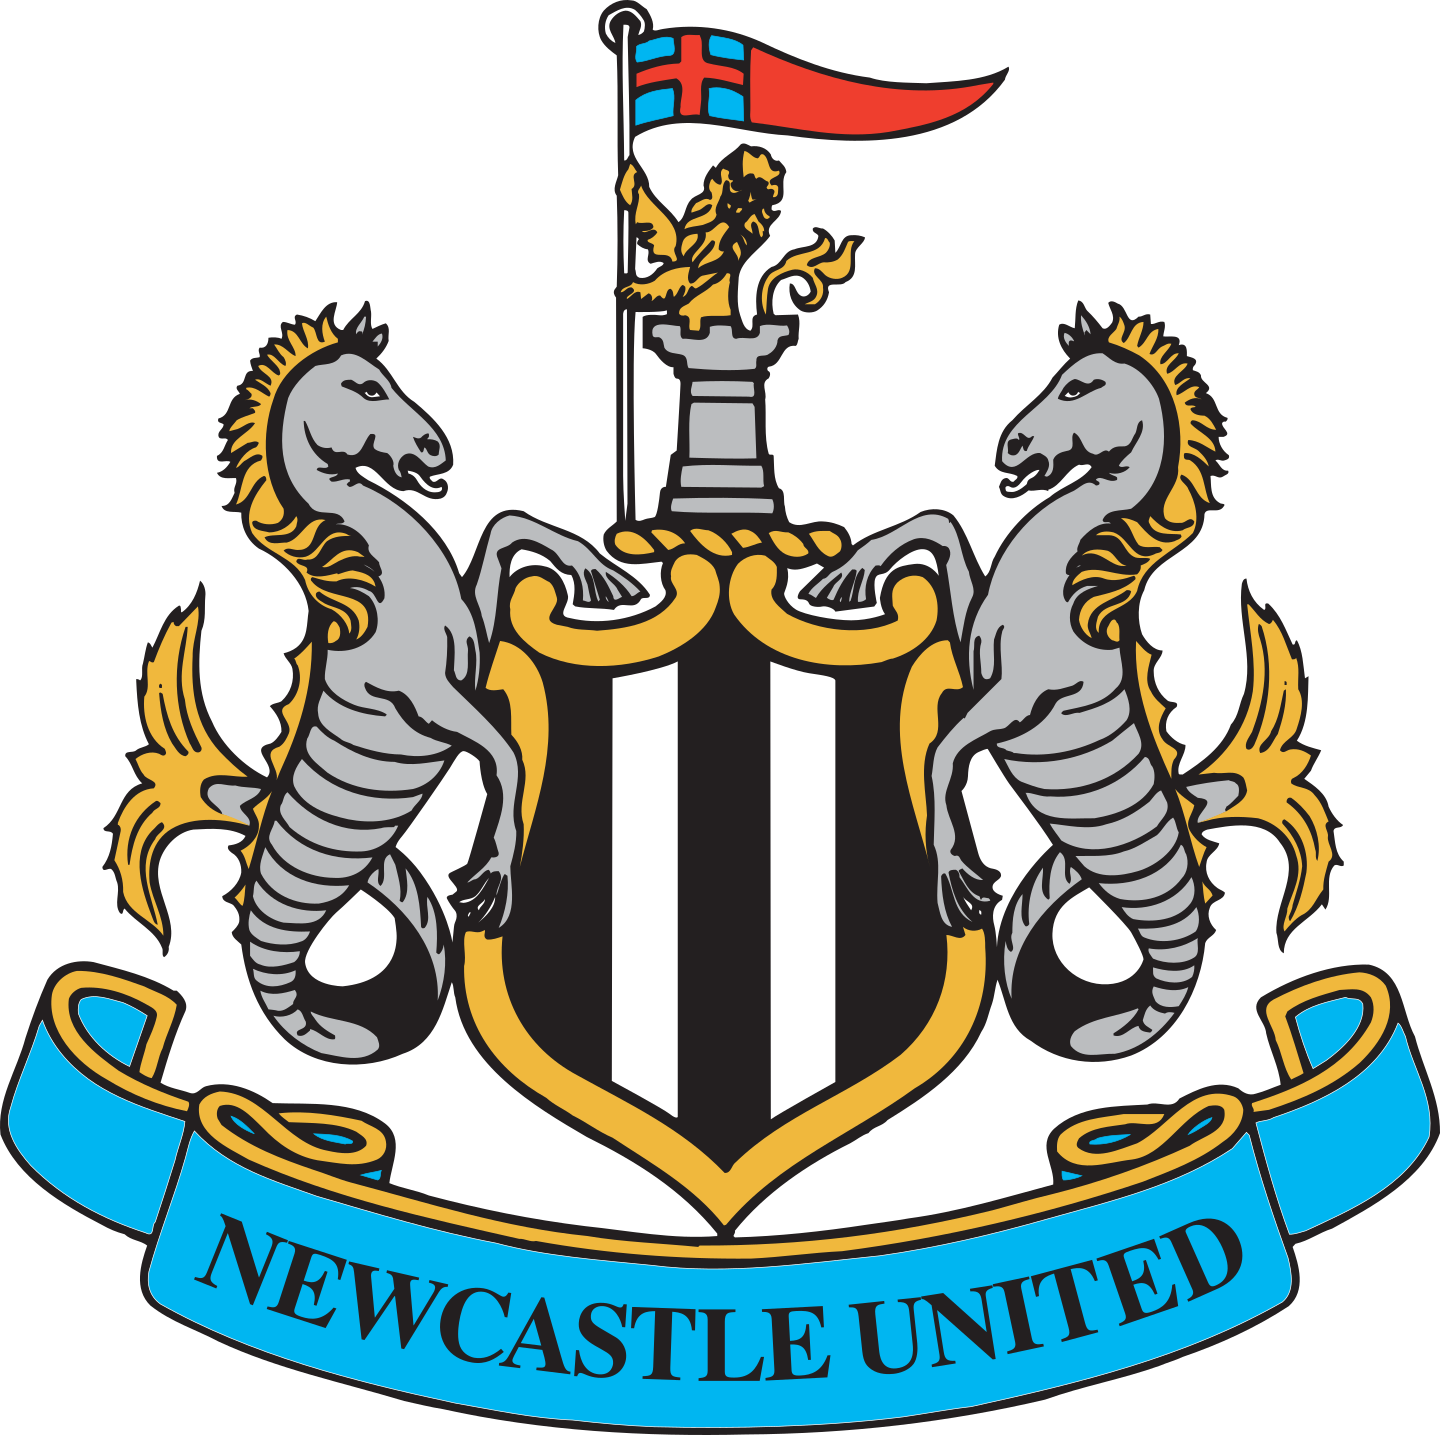 newcastle united logo 2 - Newcastle United FC Logo